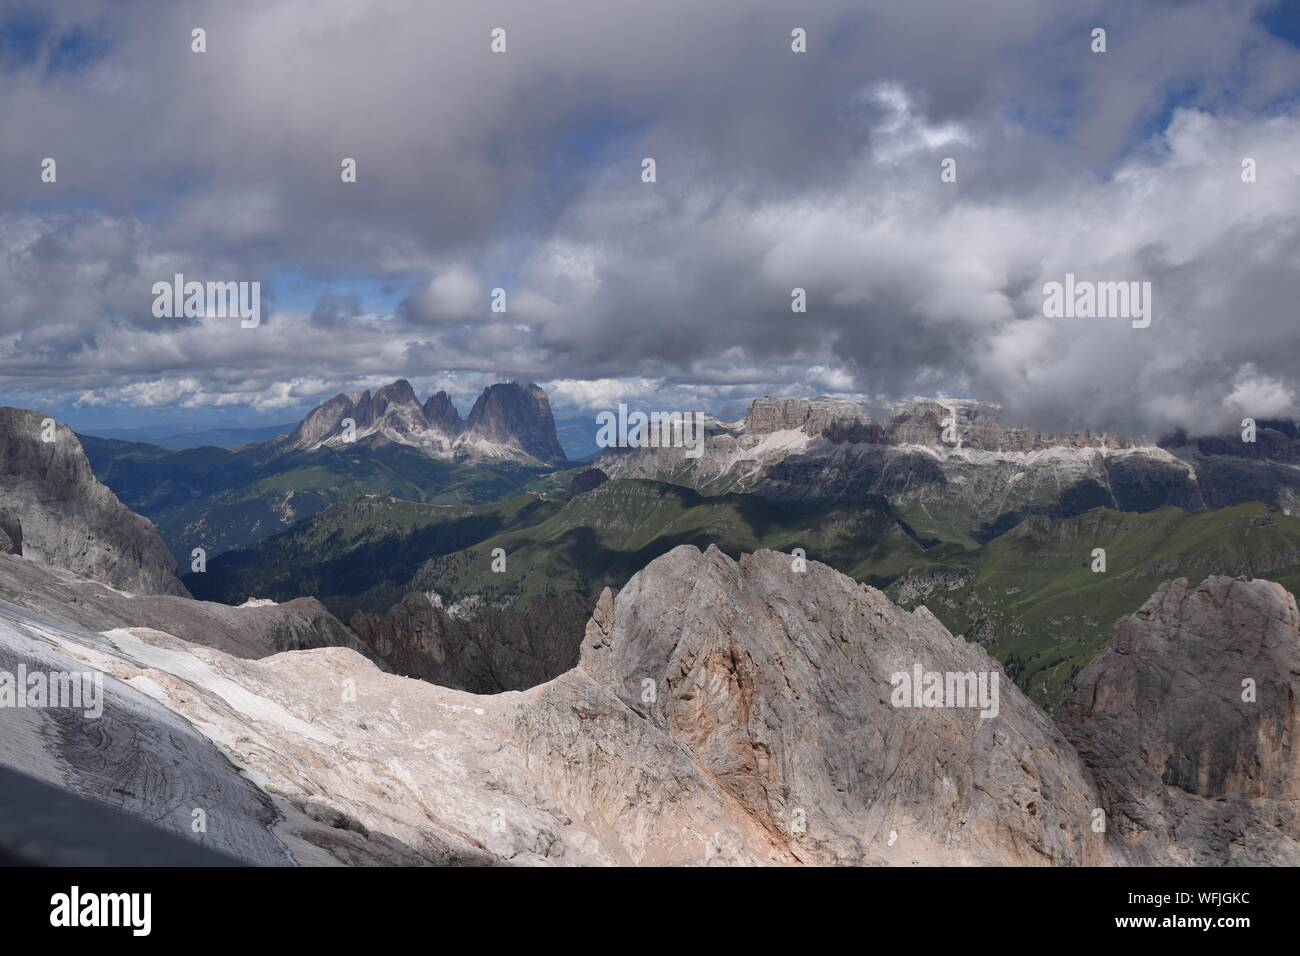 Dolomites Mountains Seen From Mt Marmolada During Winter Stock Photo